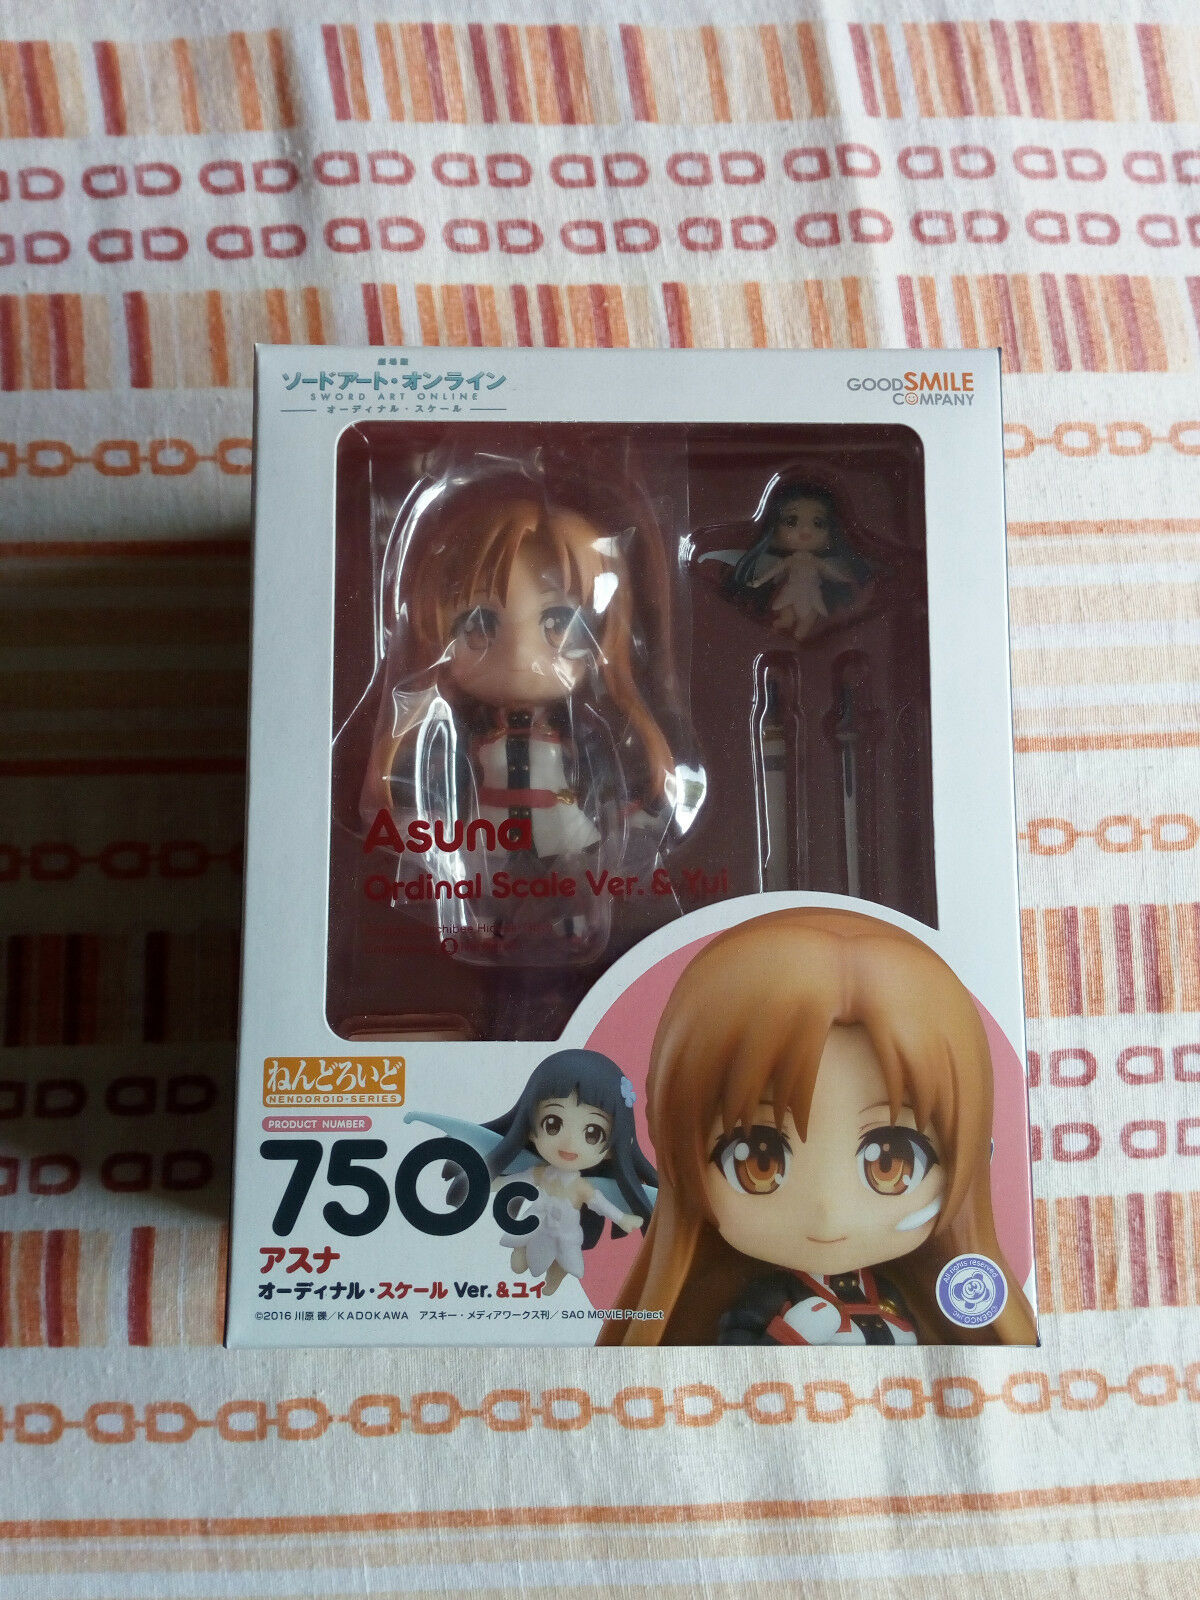 Asuna nendoroid n°750c (Sword Art Online Ordinal Scale) - Good Smile Company